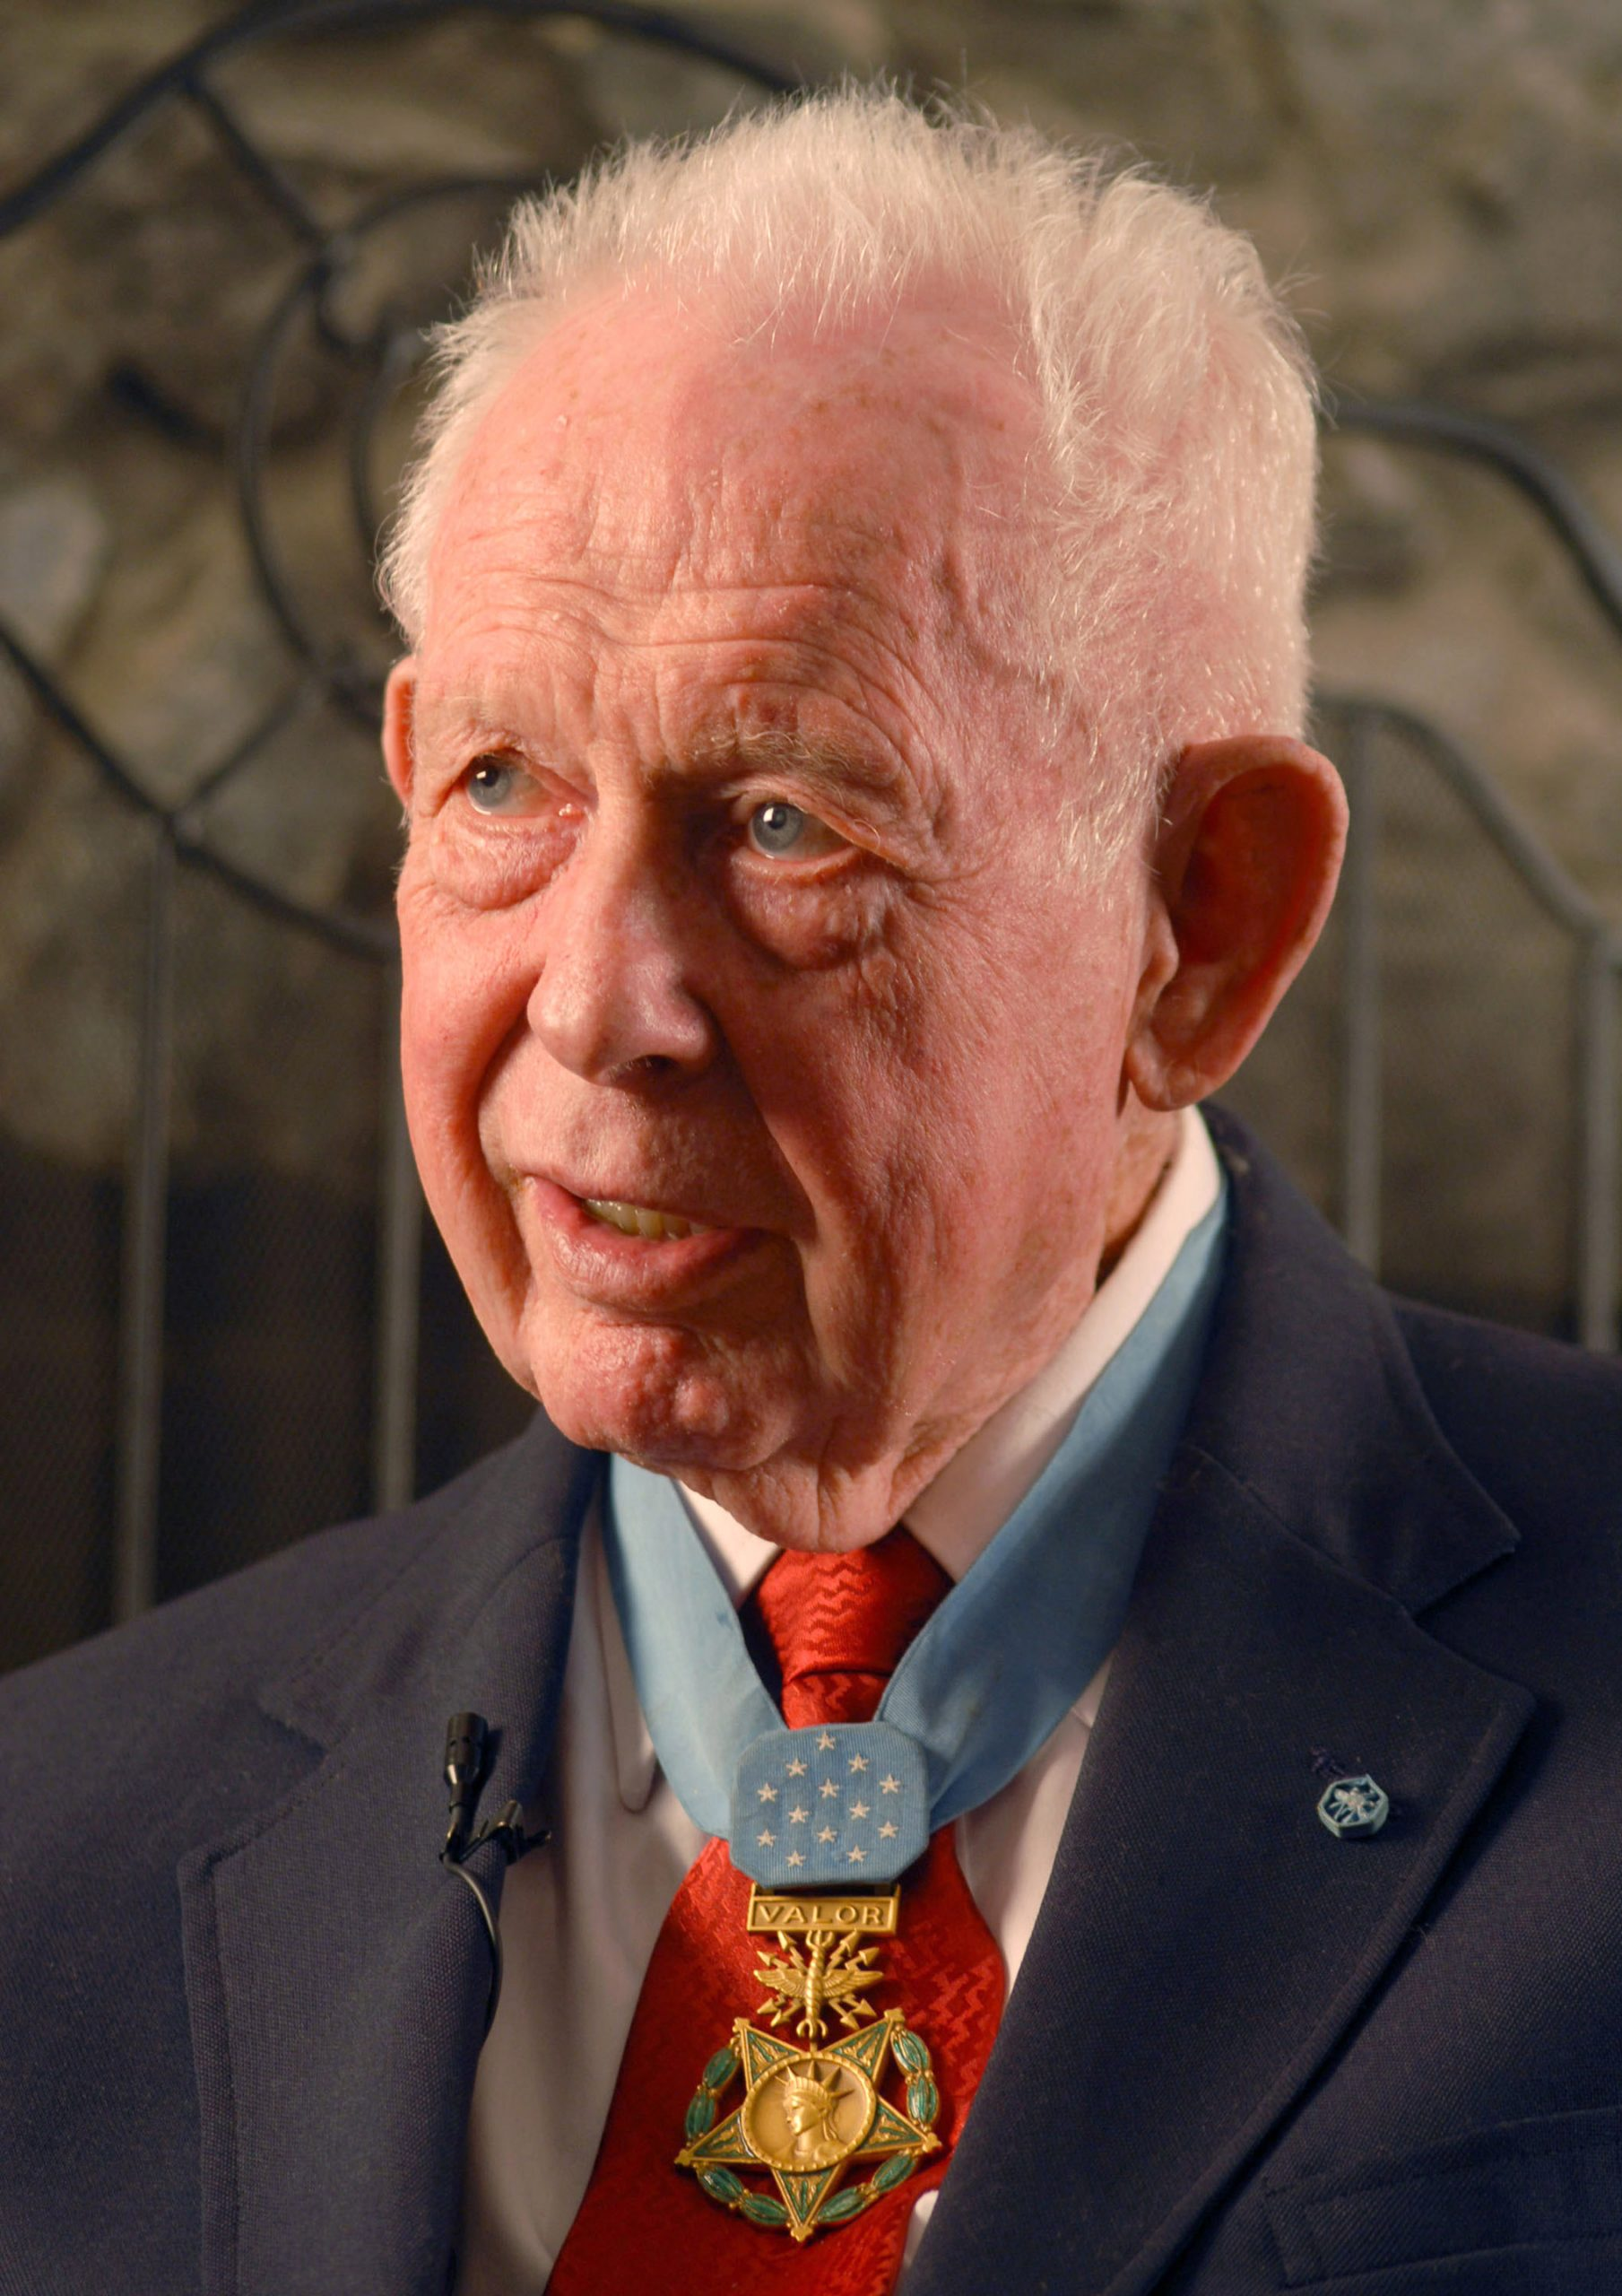 Medal of Honor recipient Col Bernard Fisher will receive a diploma from the U of U 57 years after attending classes.